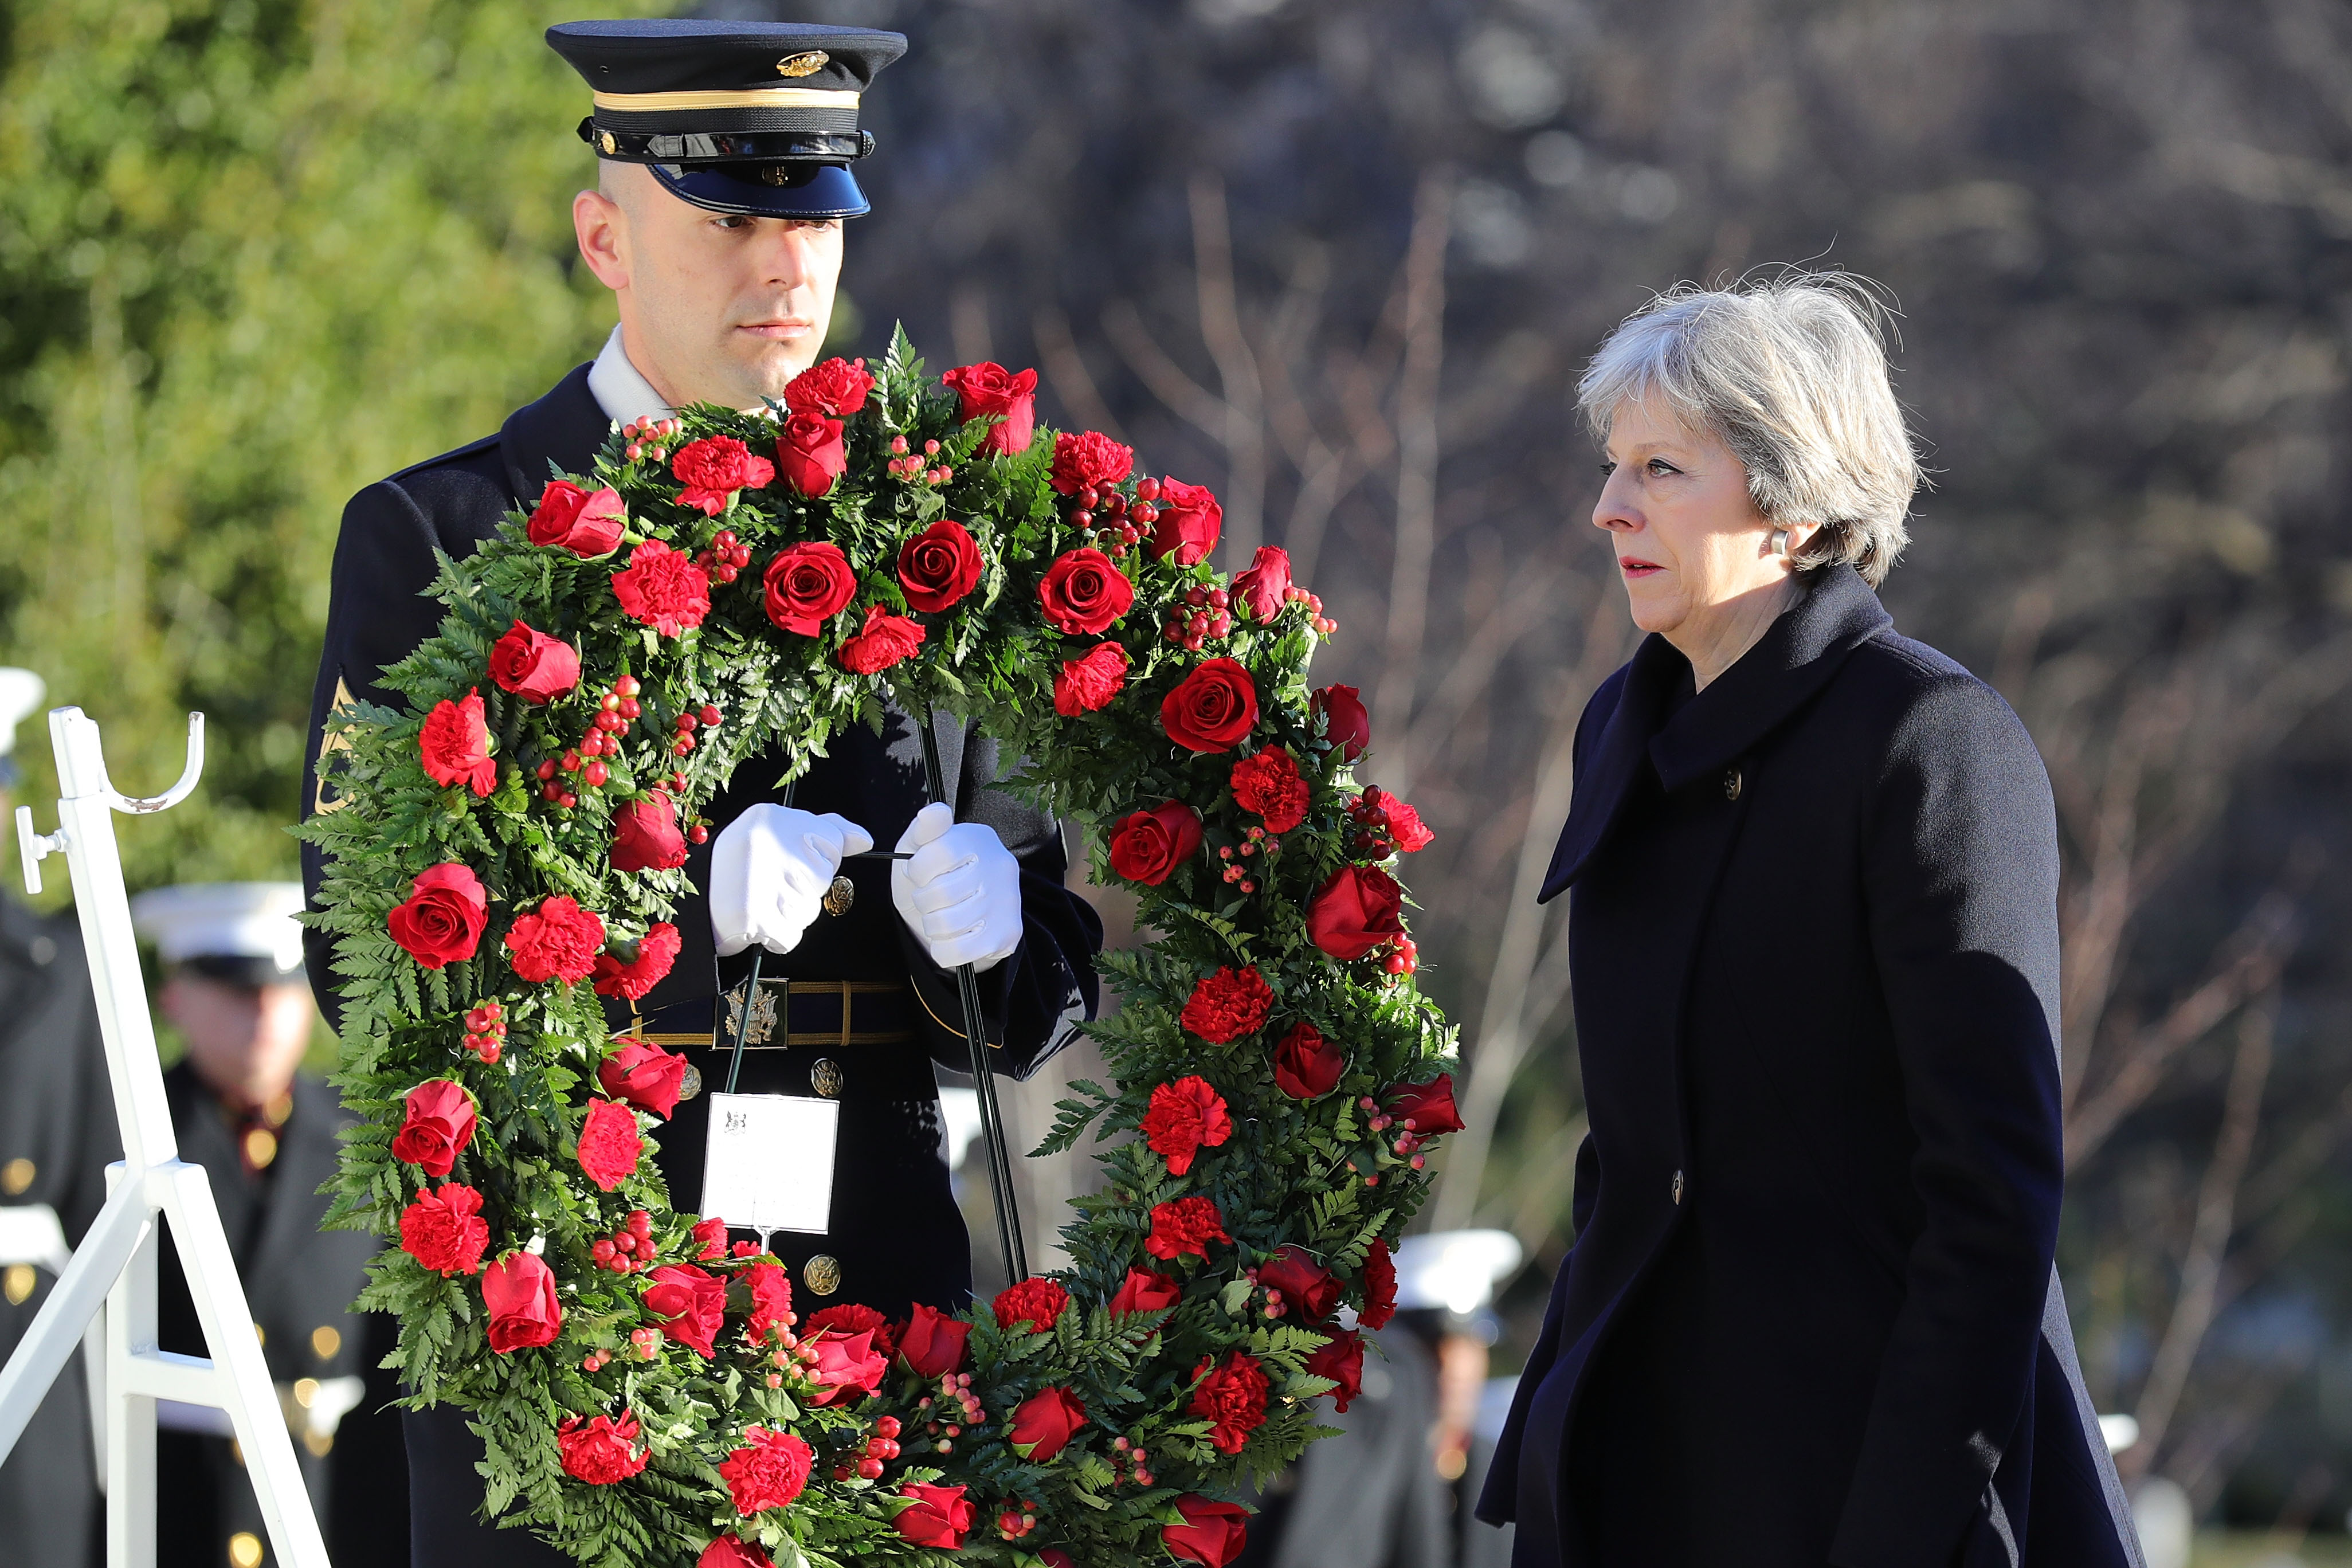 British Prime Minister Theresa May lays a wreath at the Tomb of the Unknown Solider in Arlington National Cemetery on January 27, 2017 in Arlington, Virginia.